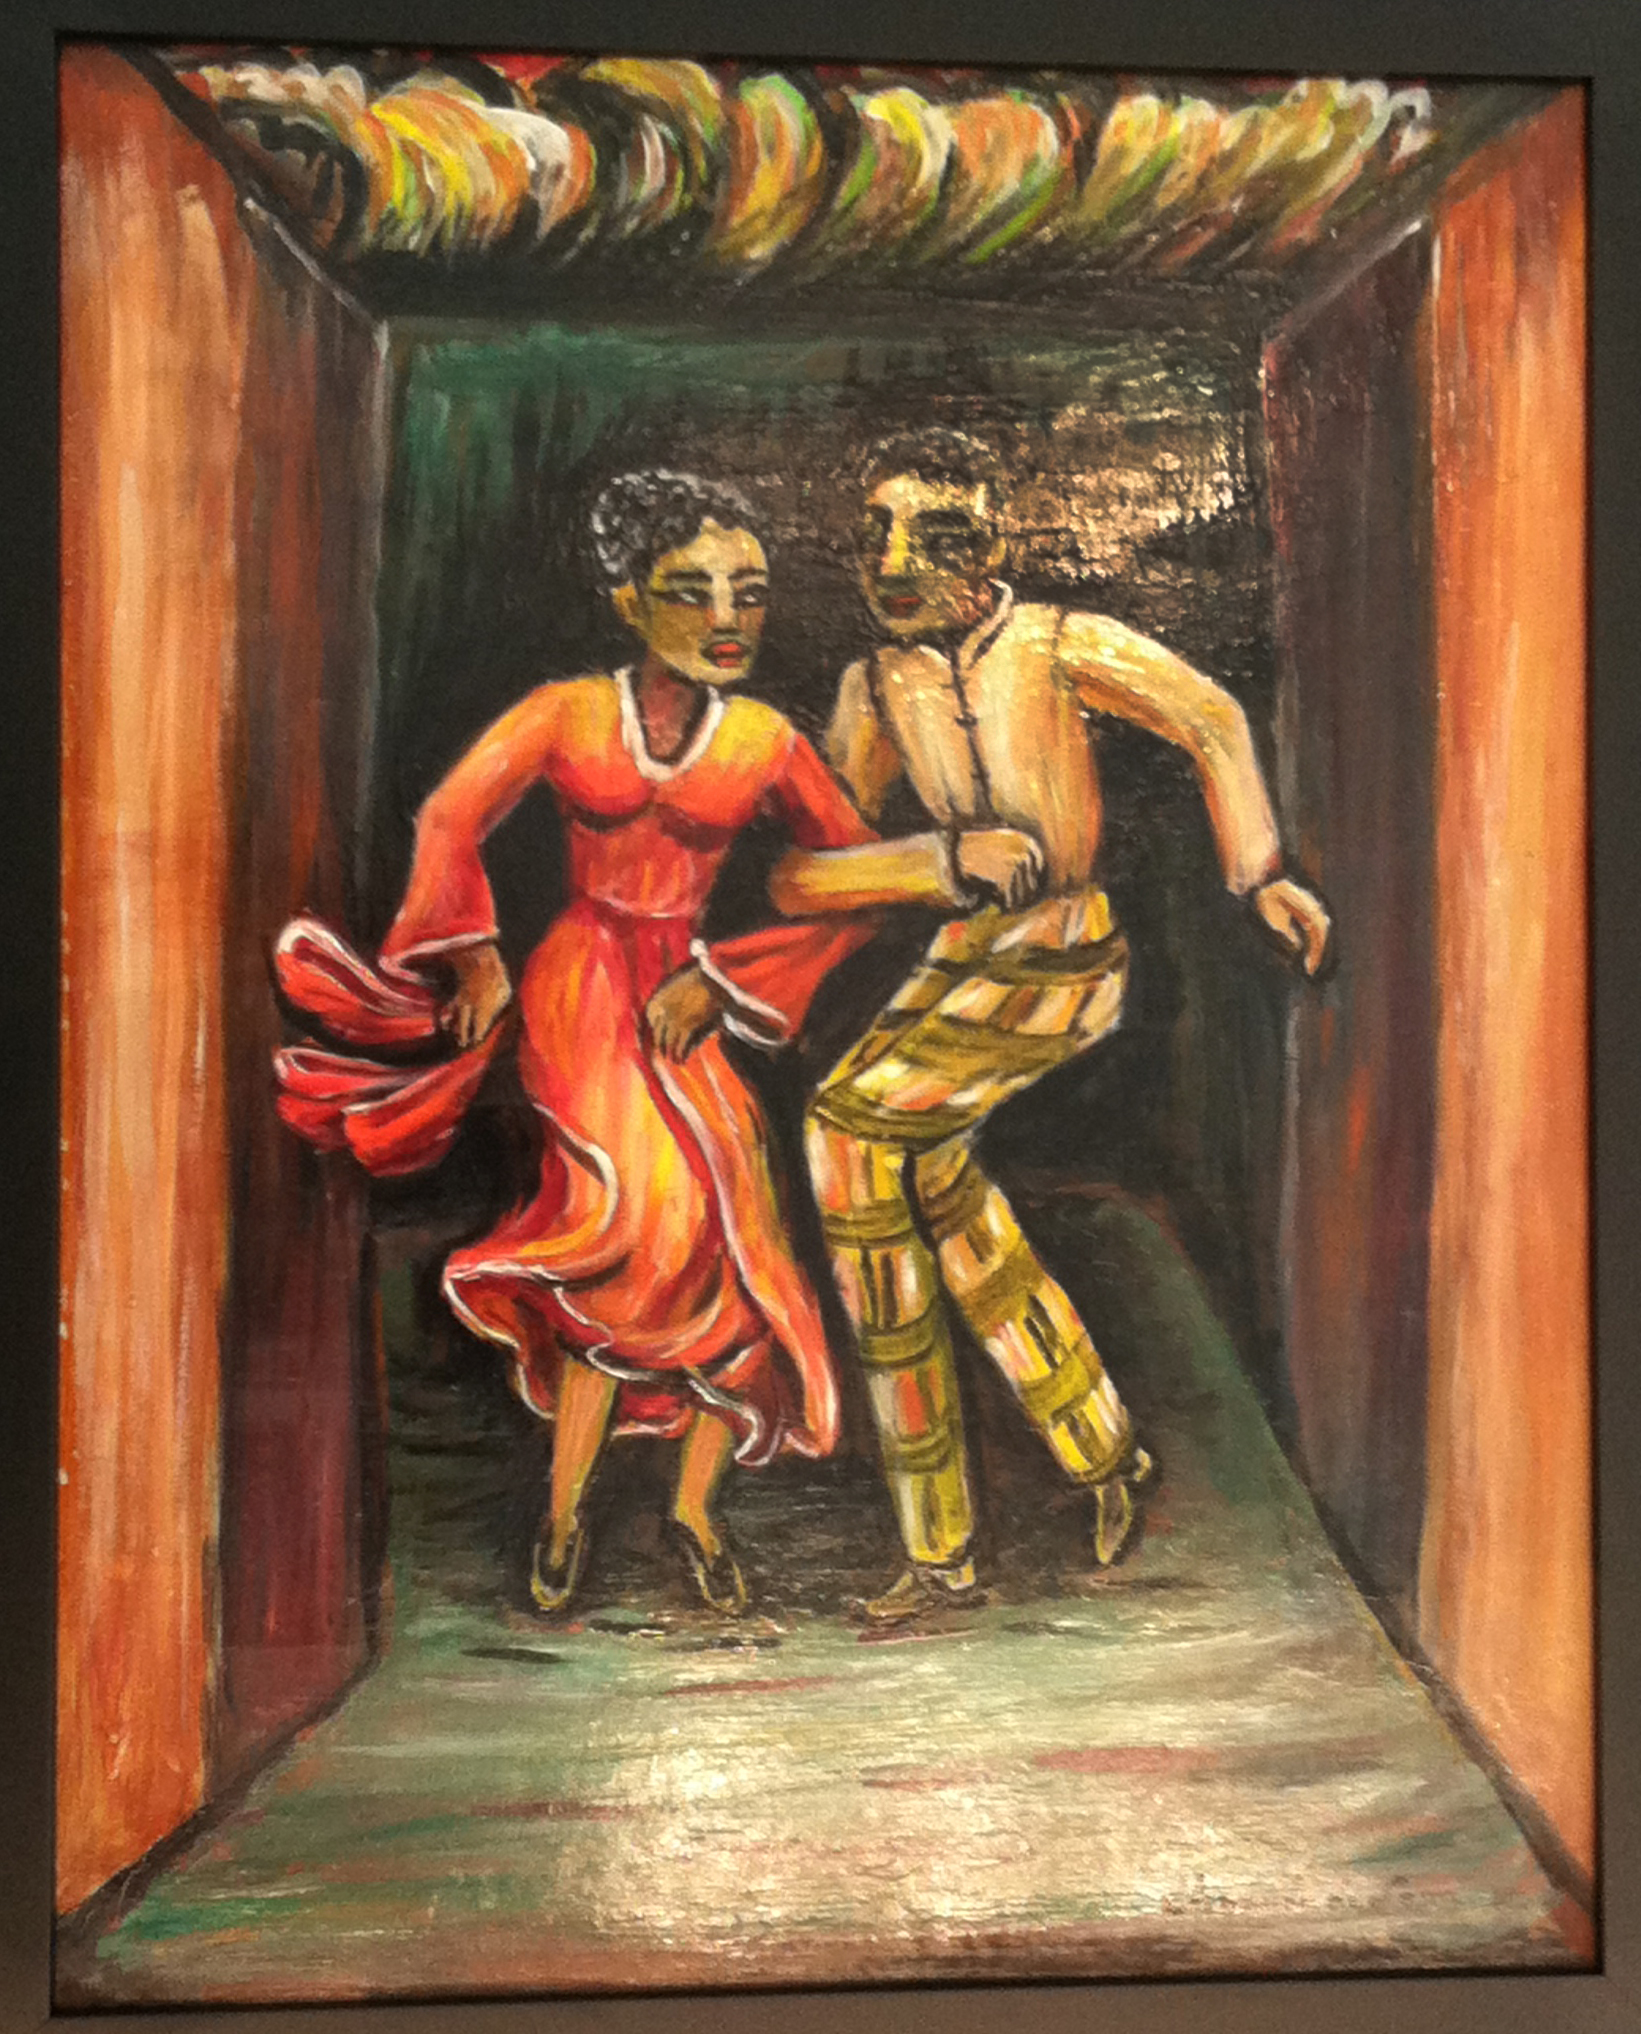 Amanda de León, <i>Dancing in Harlem</i>, 1940s. Eli and Edythe Broad Art Museum, Michigan State University, gift of Mr. and Mrs. E. K. Perry.